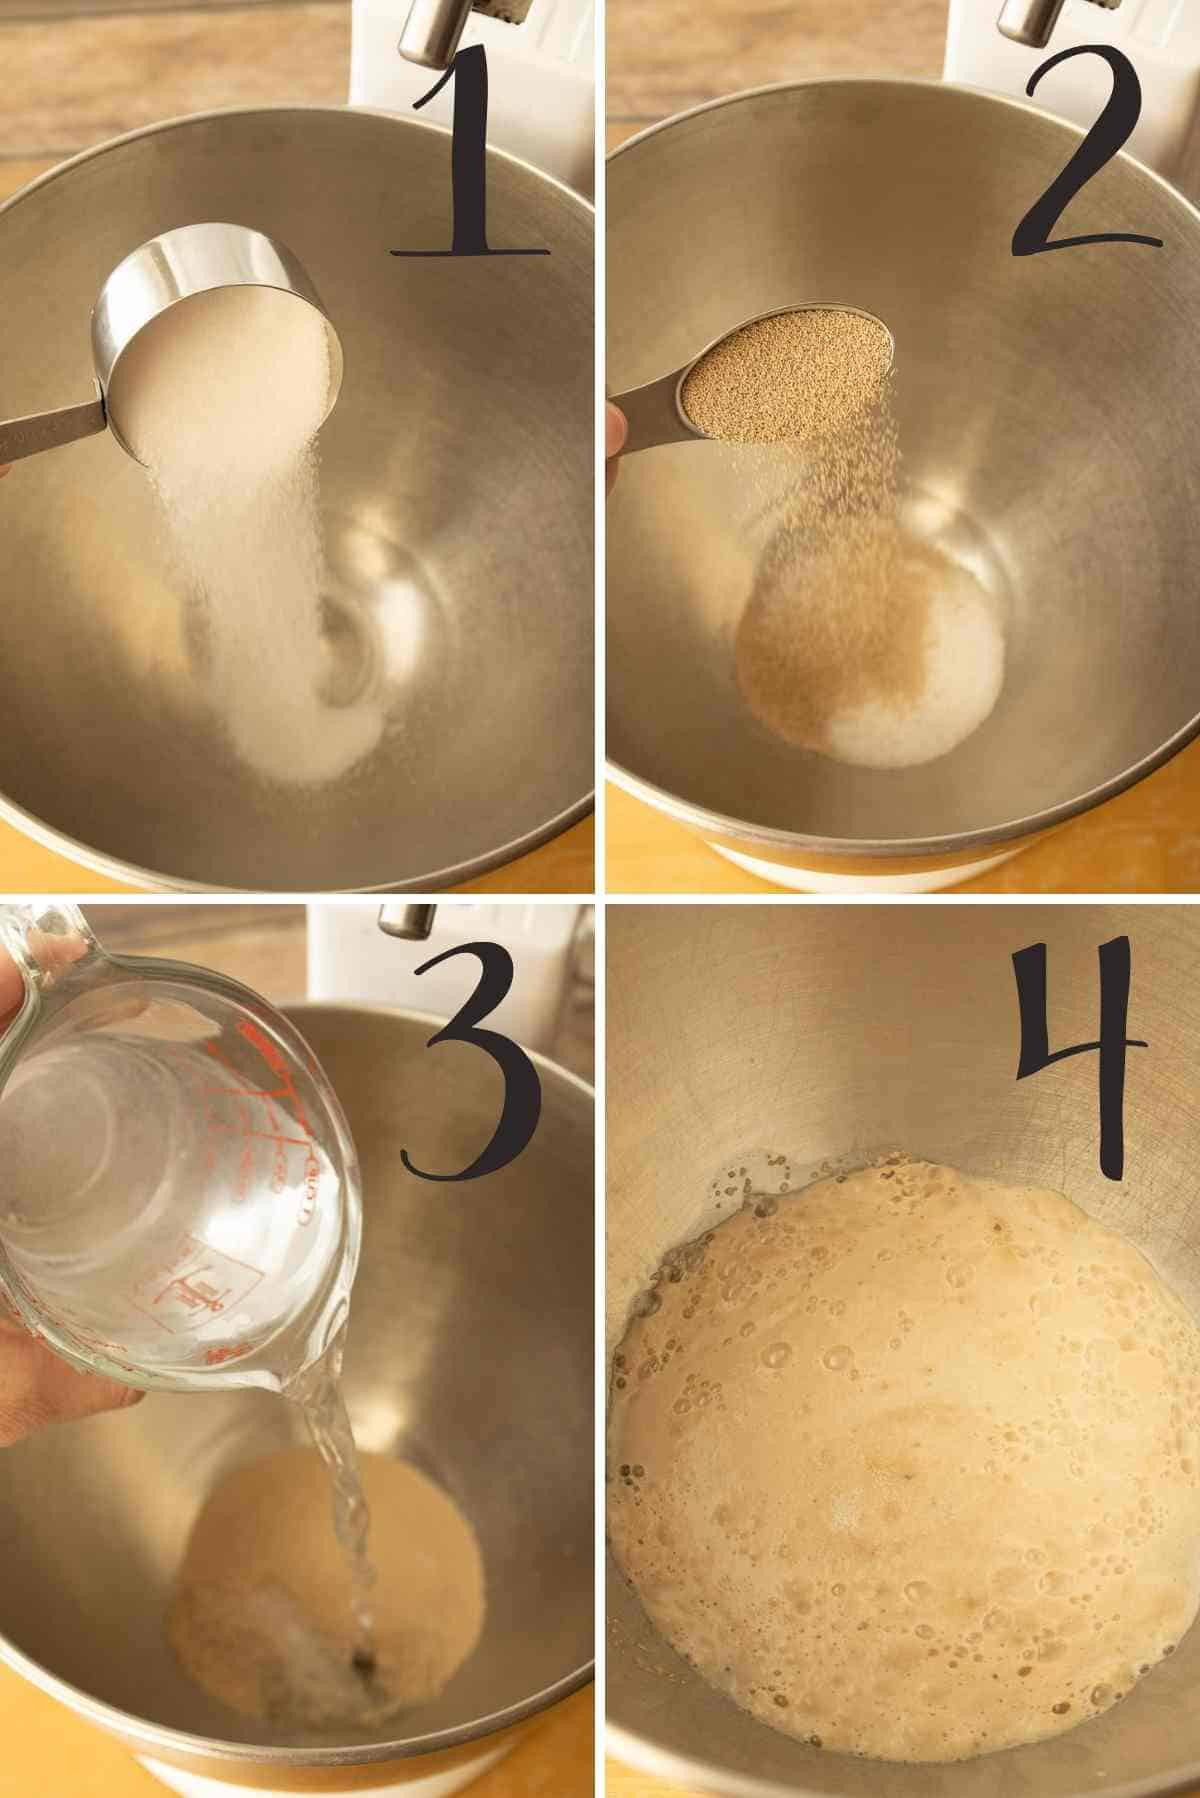 Sugar, yeast and warm water added to a mixer bowl to get foamy.